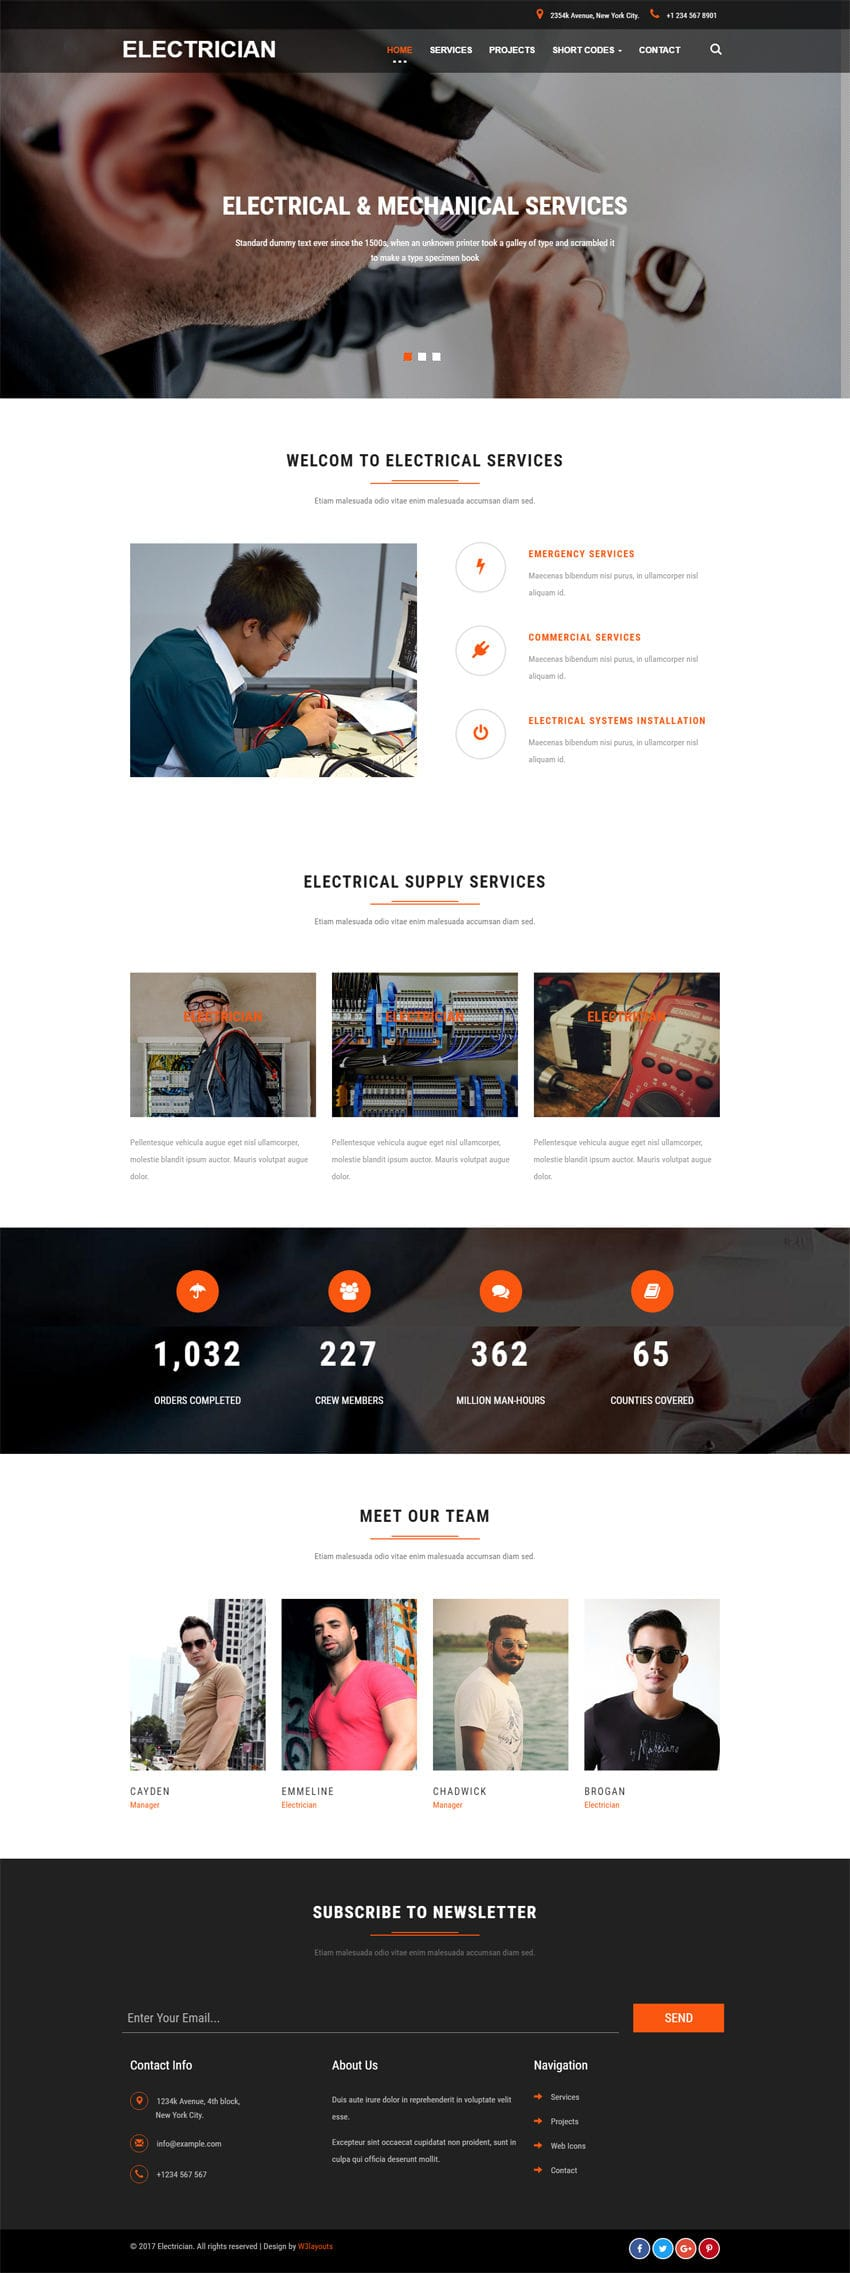 electrician an industrial category bootstrap responsive web template. Black Bedroom Furniture Sets. Home Design Ideas